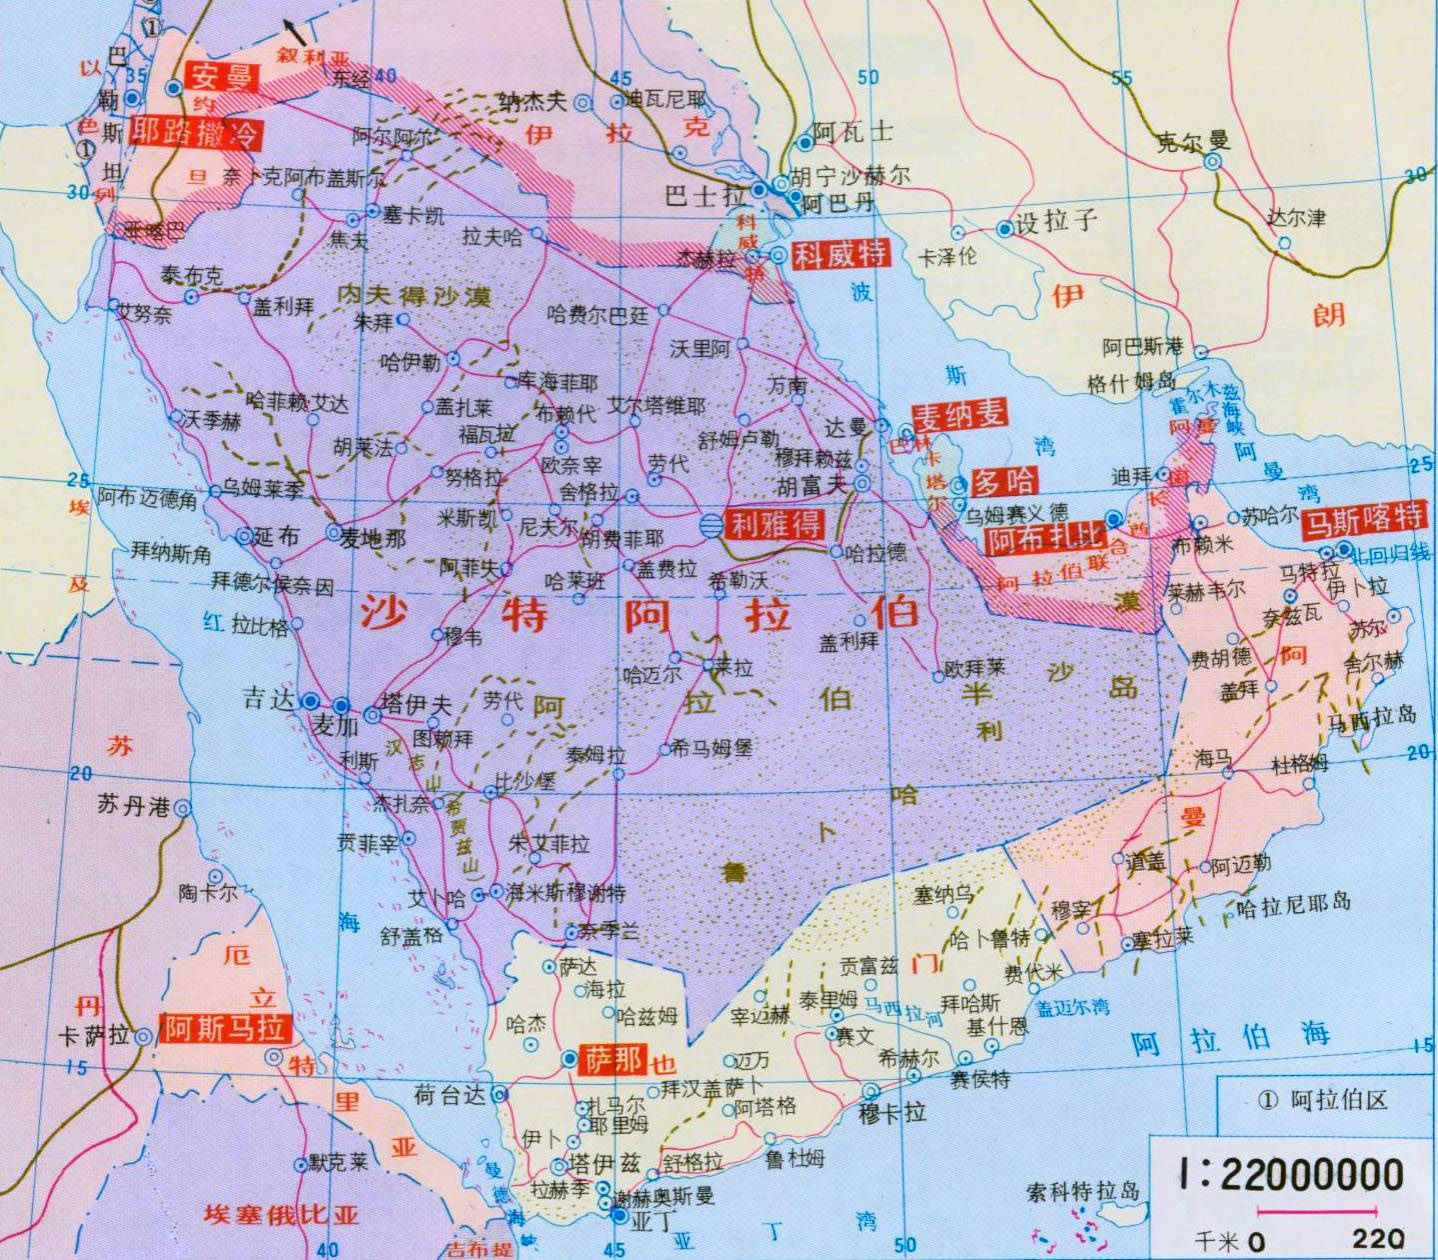 Map Of Saudi Arabia With Roads And Cities In Chinese Saudi Arabia - Saudi road map with cities